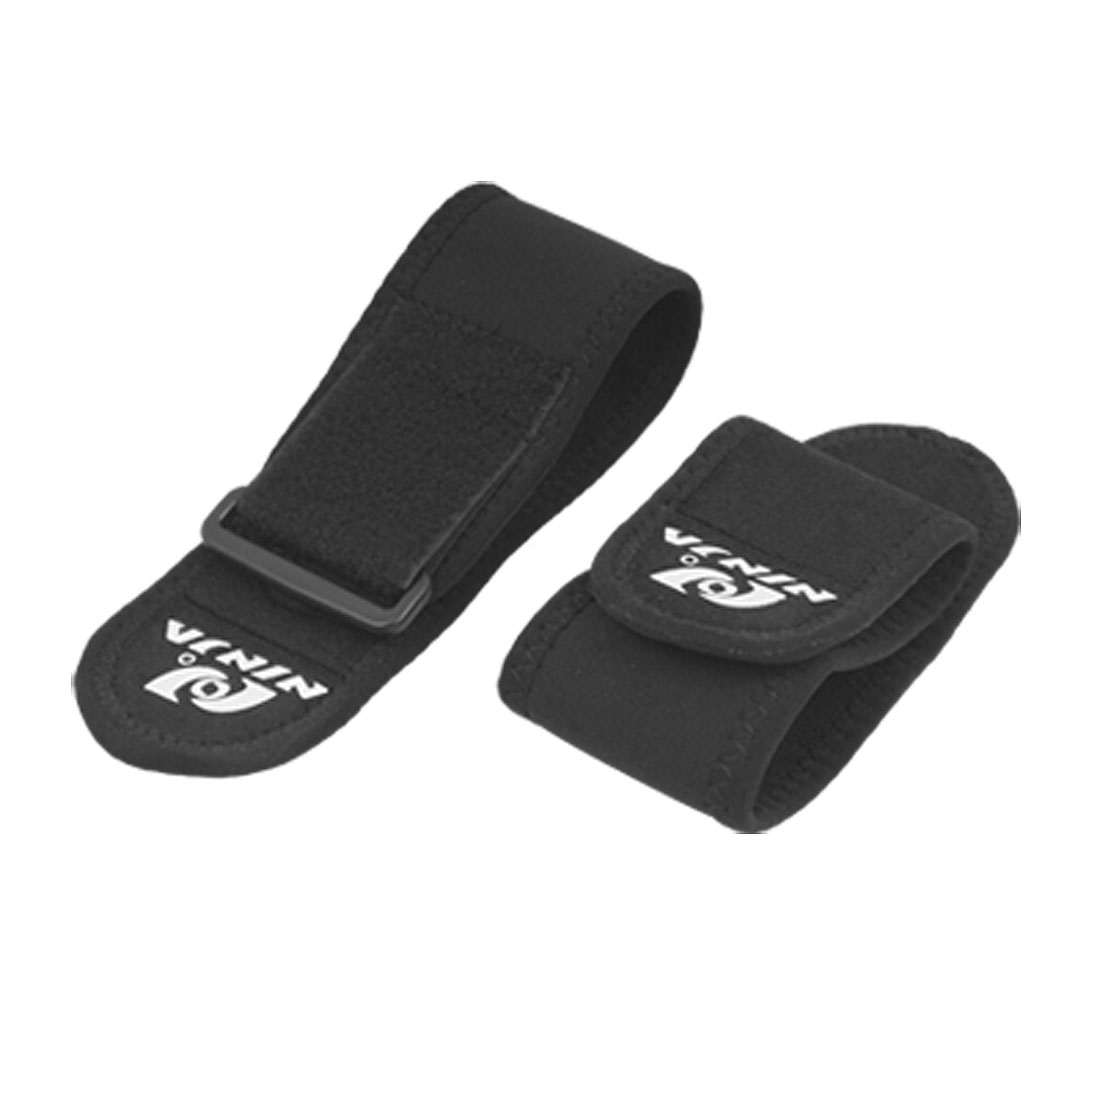 Pair of Black Adjustable Wrist Protector Neoprene Support